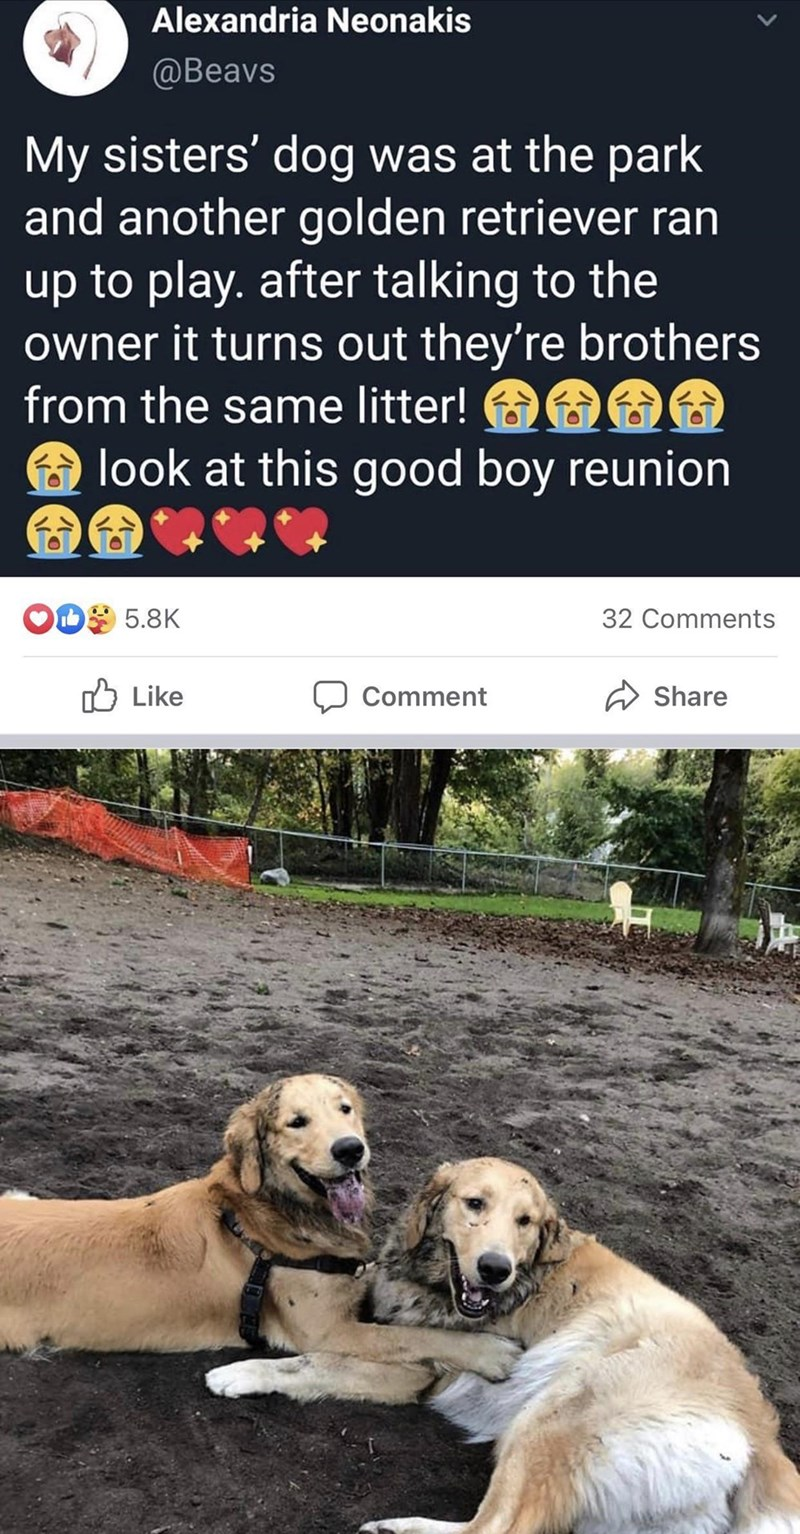 Dog - Alexandria Neonakis @Beavs My sisters' dog was at the park and another golden retriever ran up to play. after talking to the owner it turns out they're brothers from the same litter! look at this good boy reunion ODS 5.8K 32 Comments O Like Comment Share